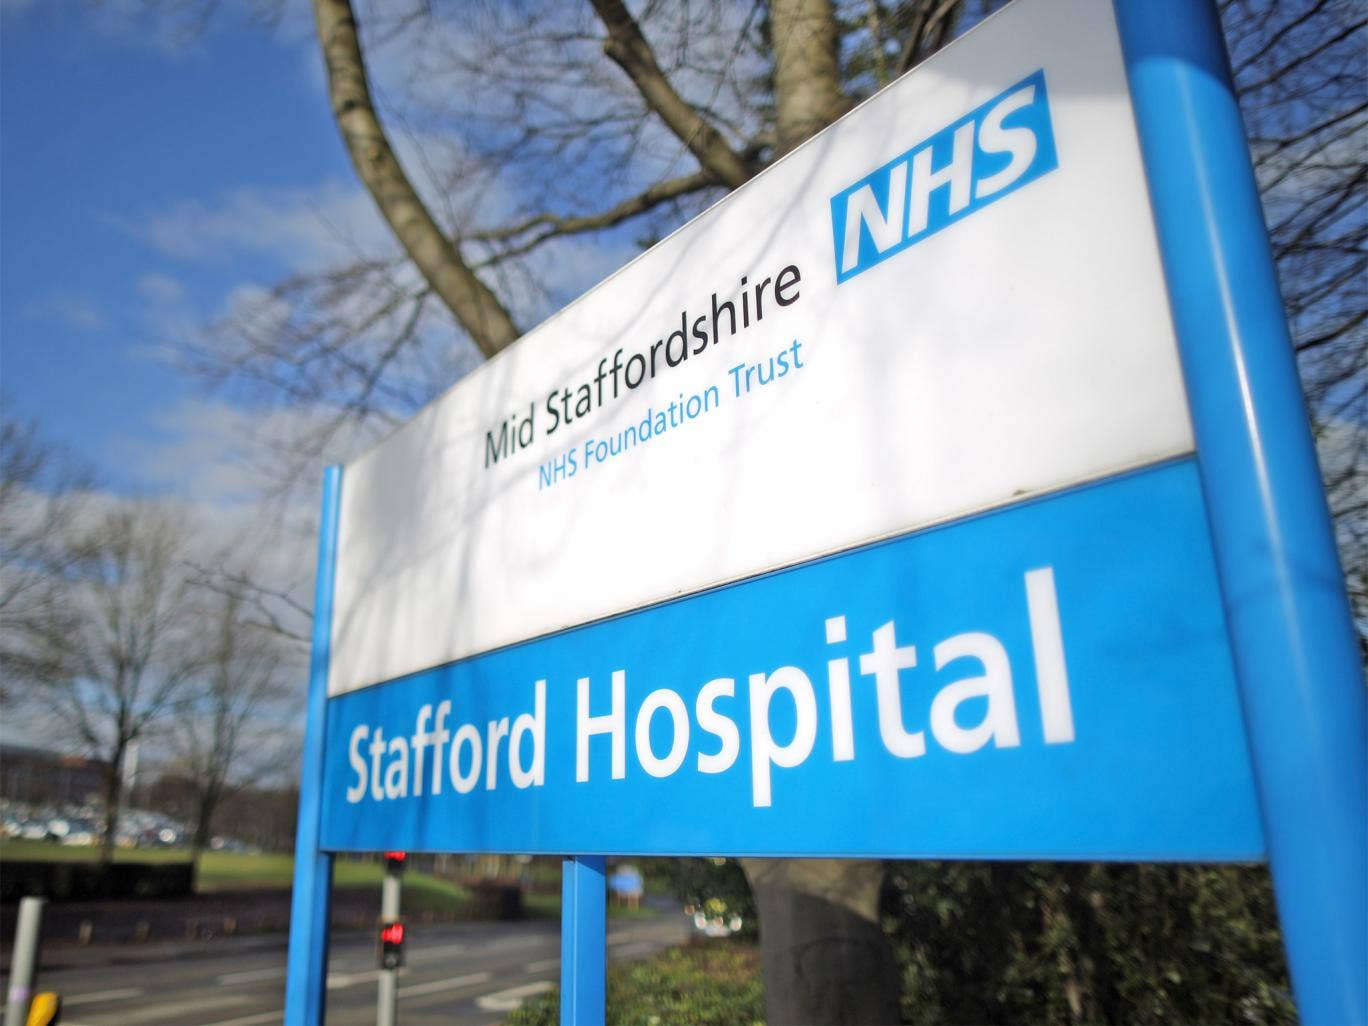 Stafford Hospital, where hundreds of patients are thought to have died needlessly in a four-year period